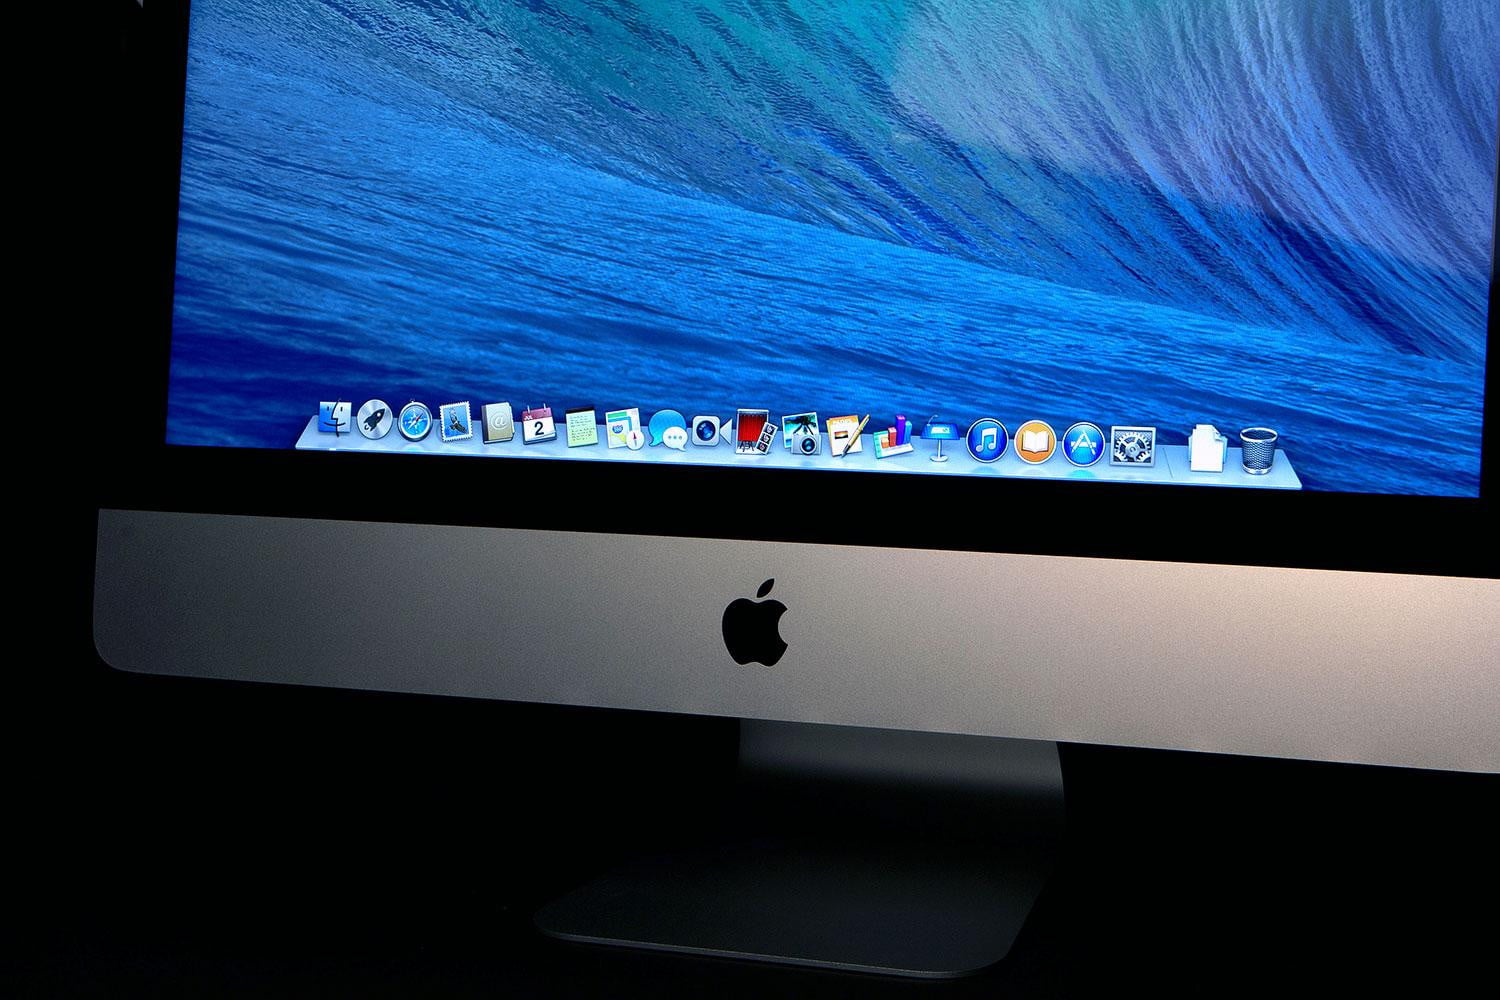 Apple 21.5-inch iMac review | 2014 | Digital Trends